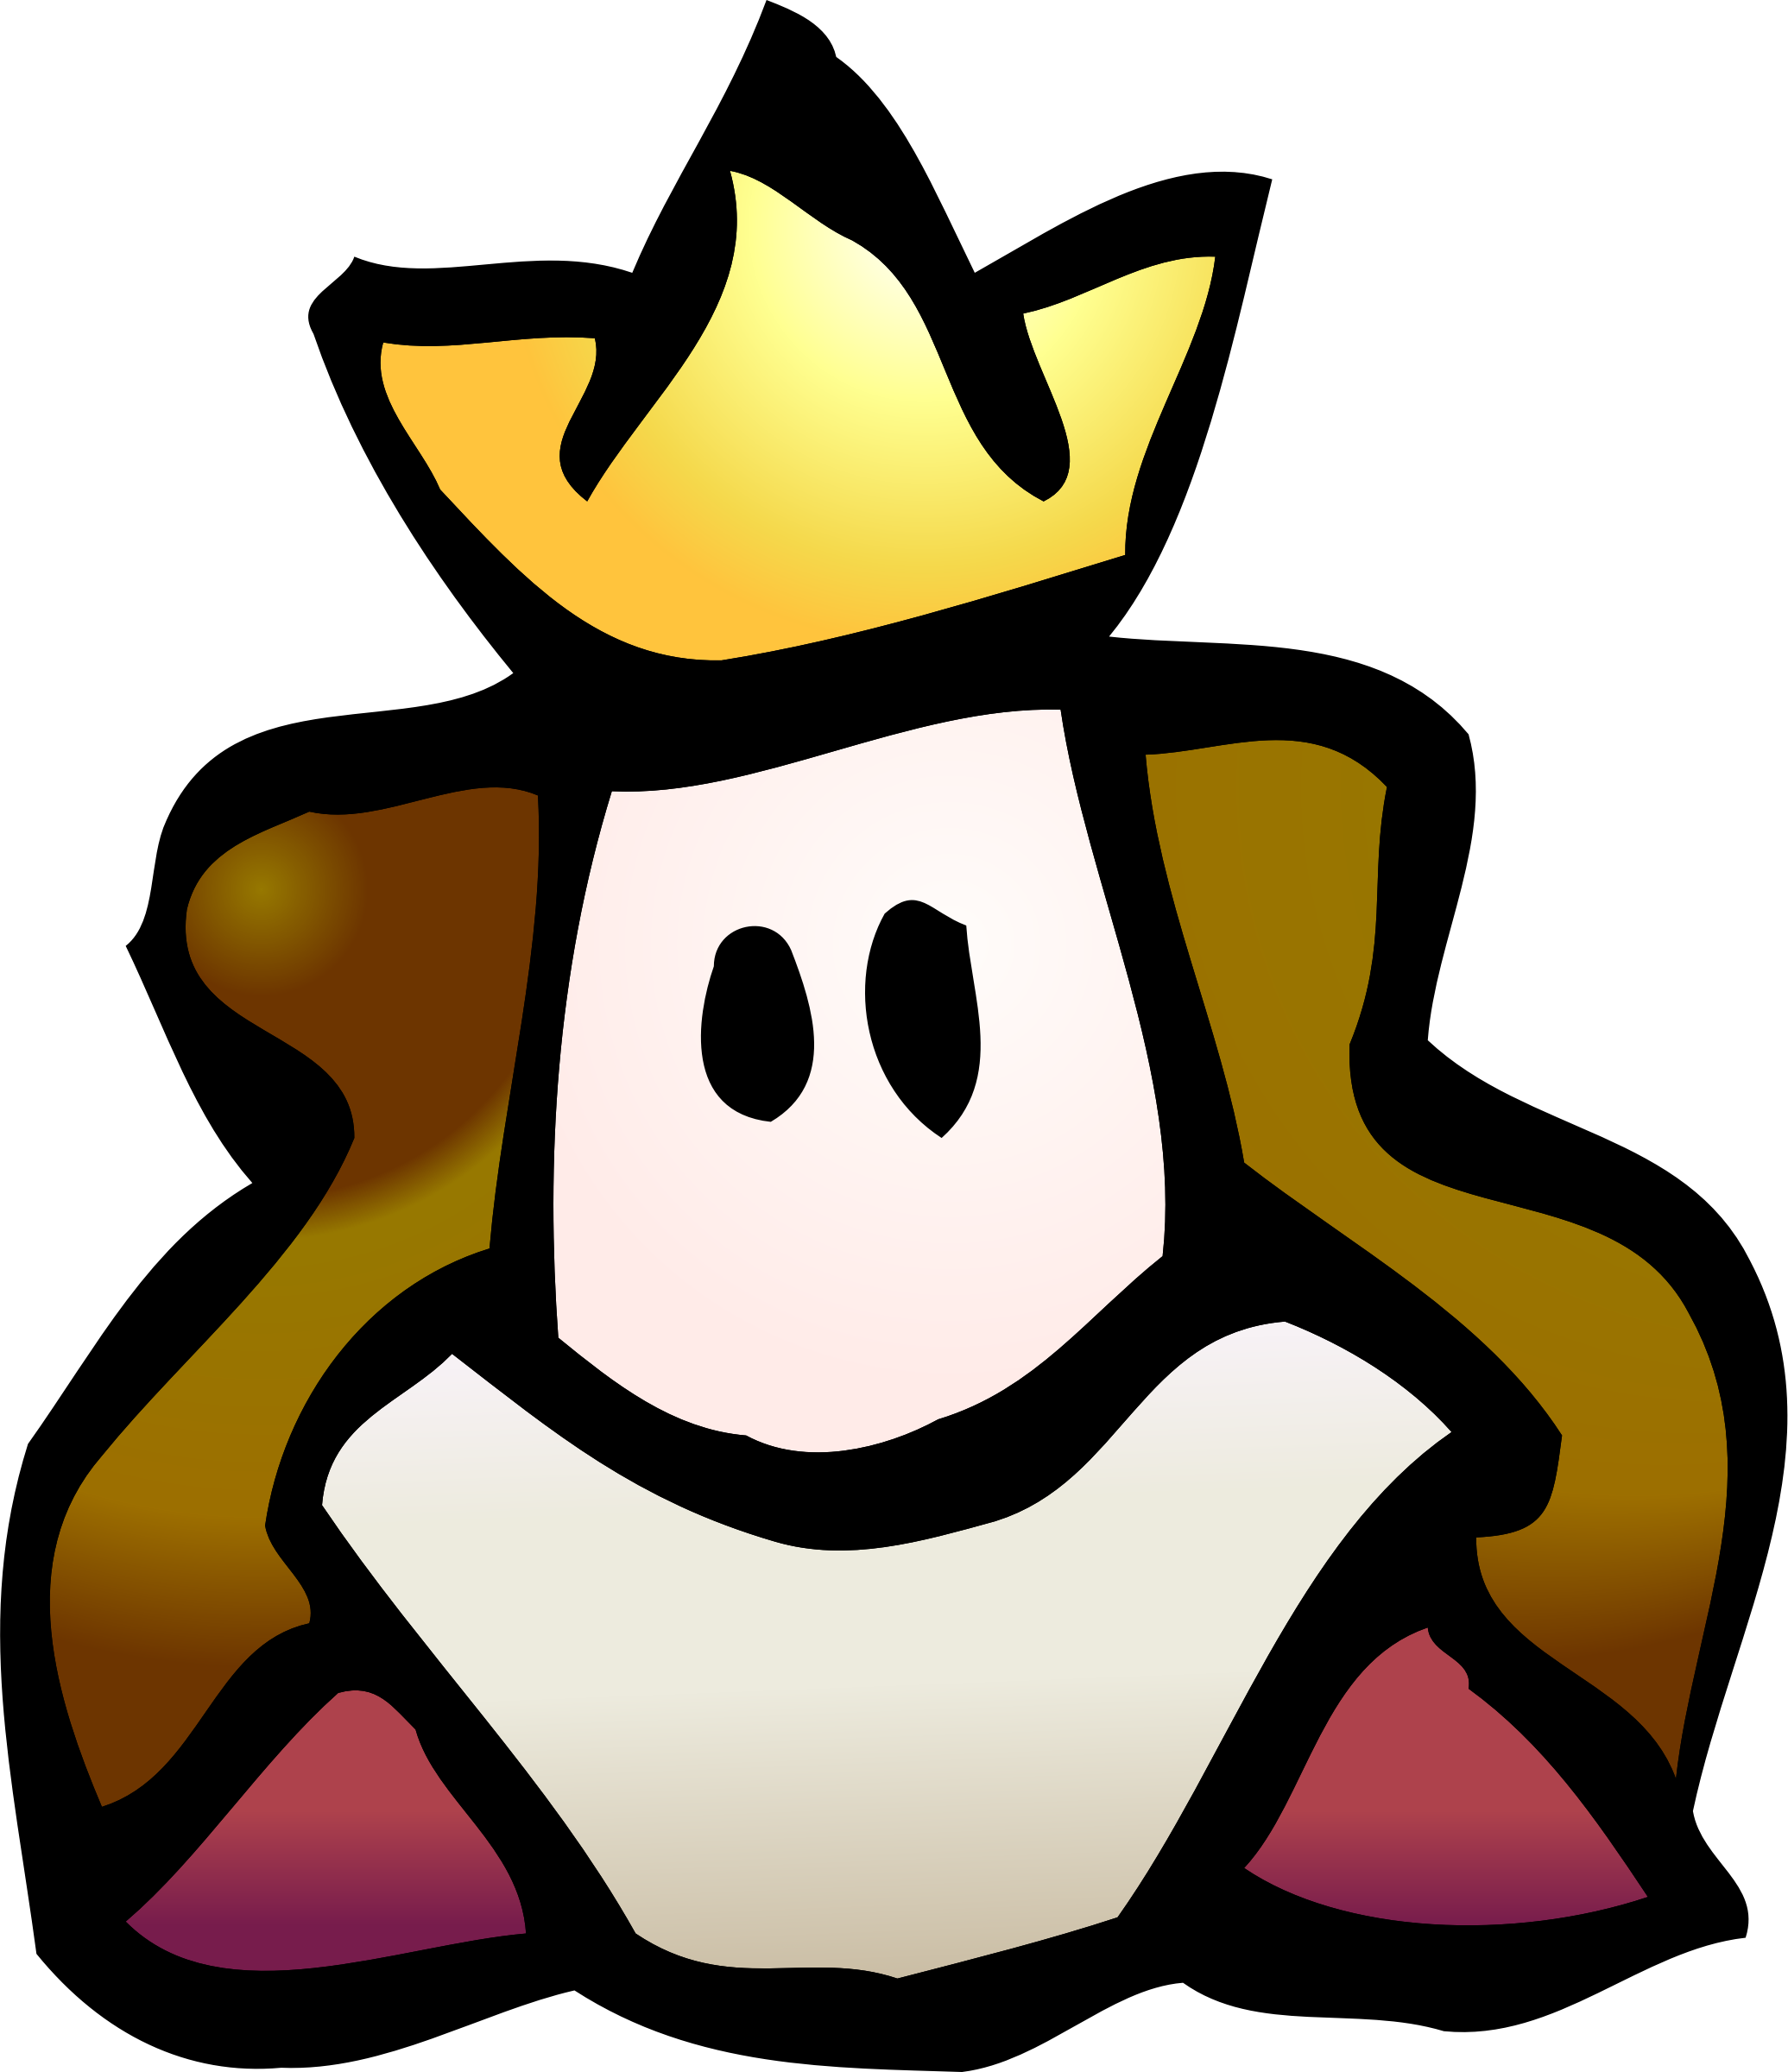 queen icon by Klàro